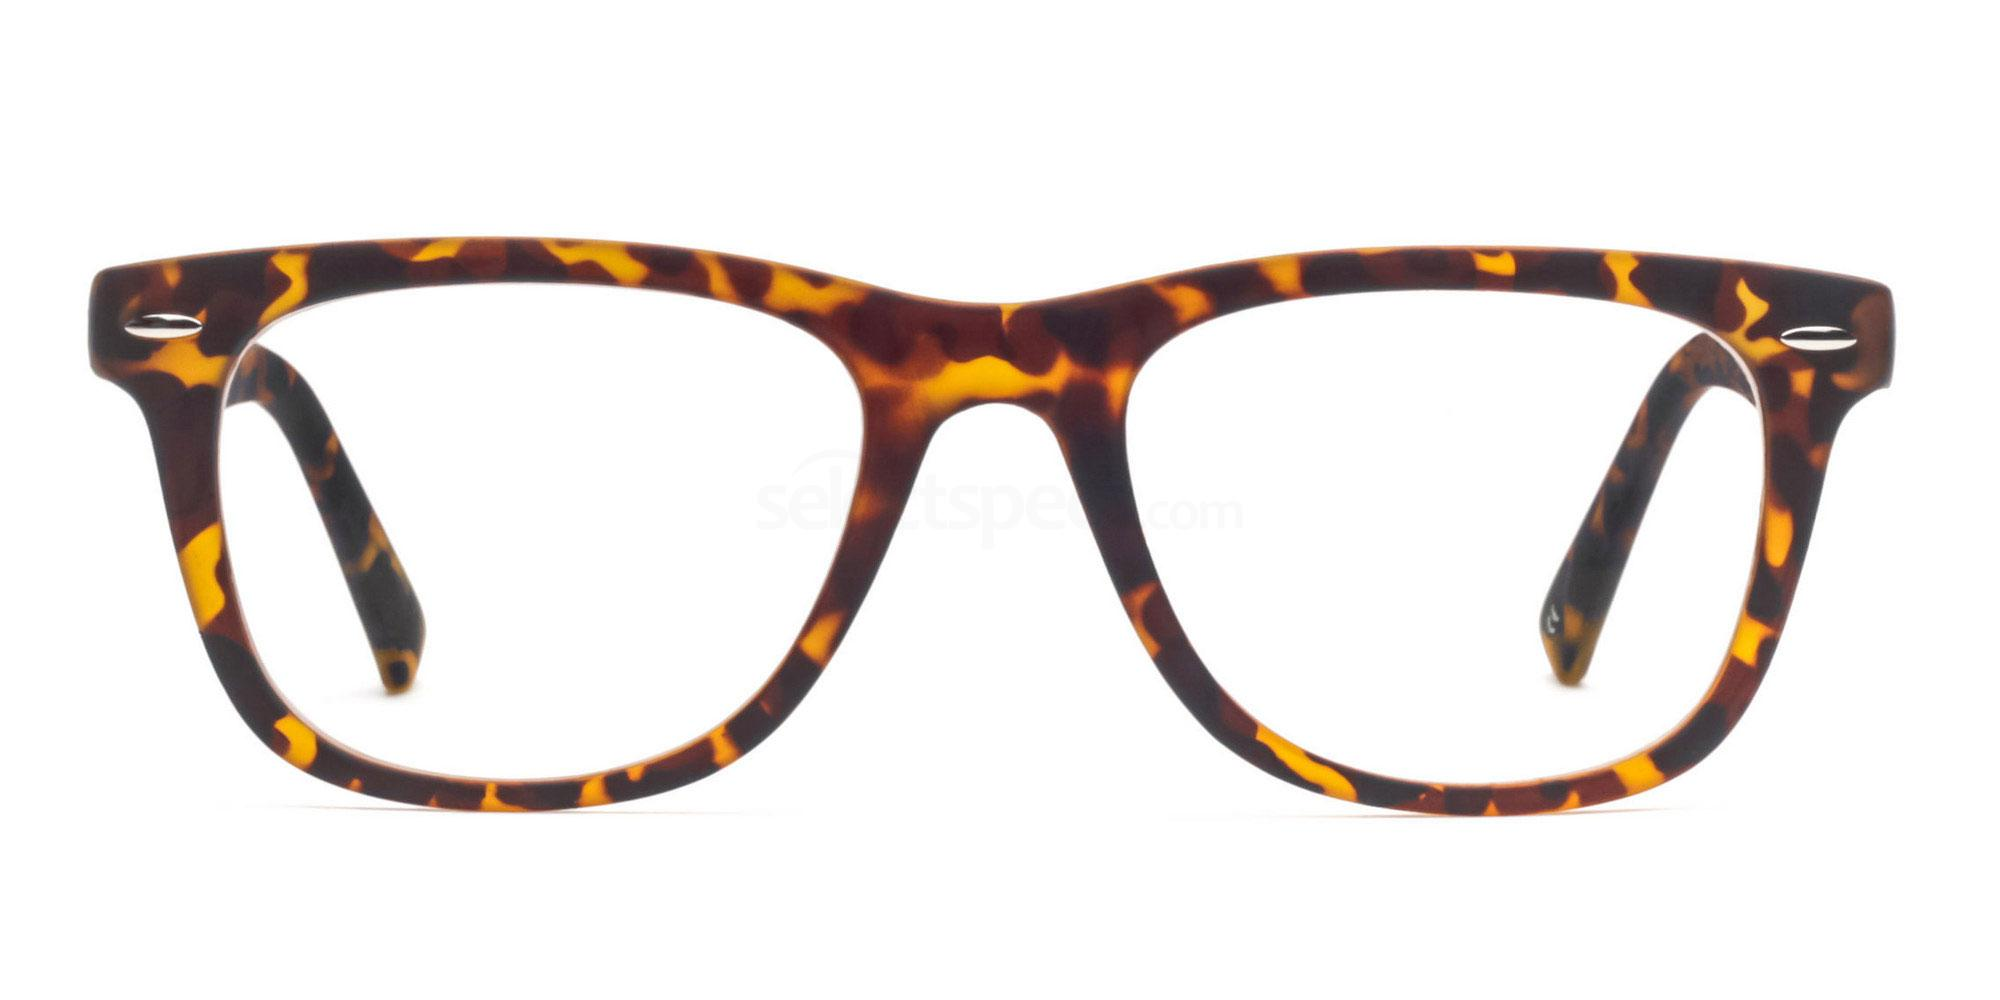 C9 8121 - Tortoise Glasses, Savannah